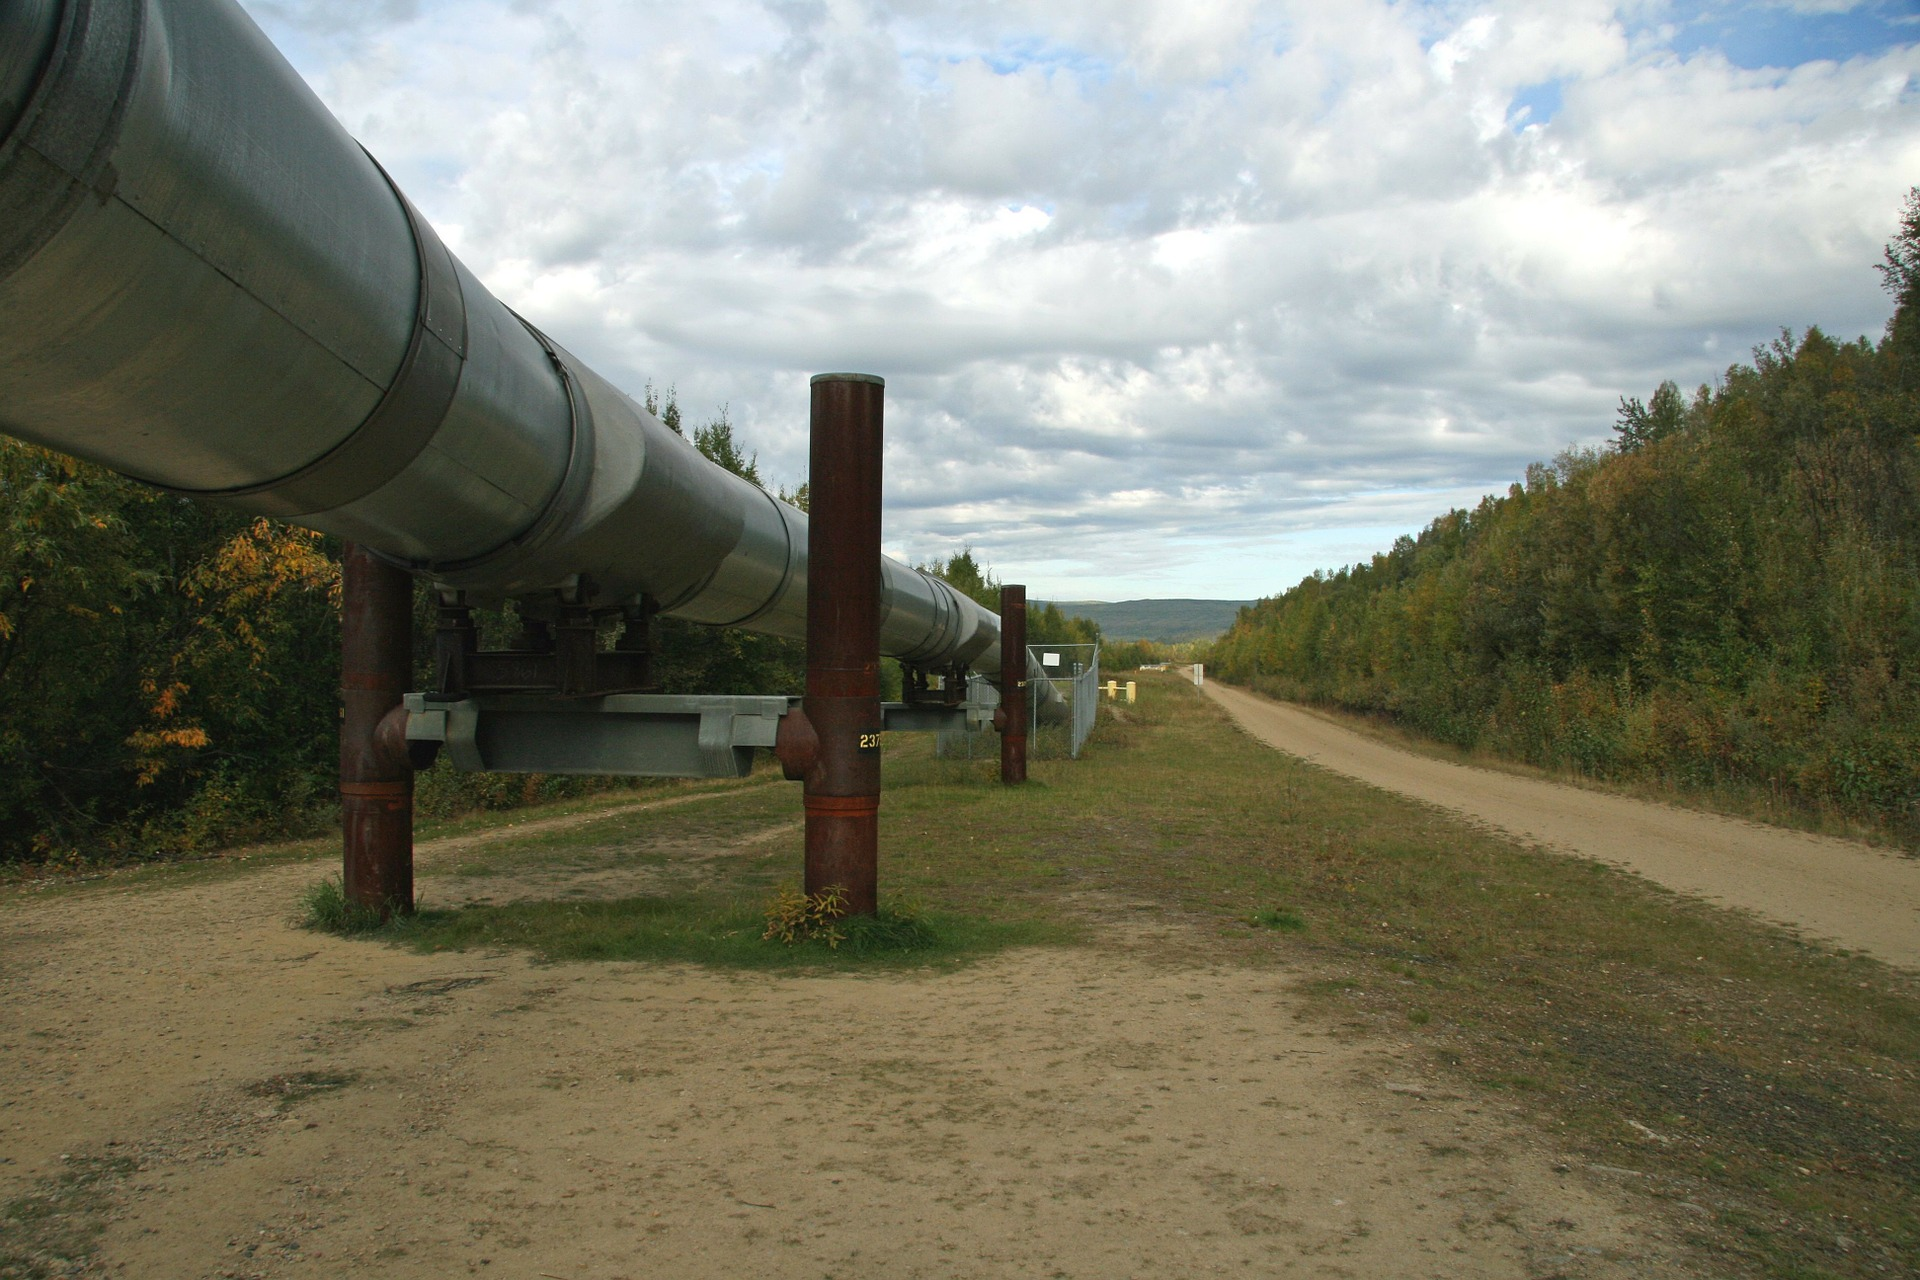 atlantic coast pipeline